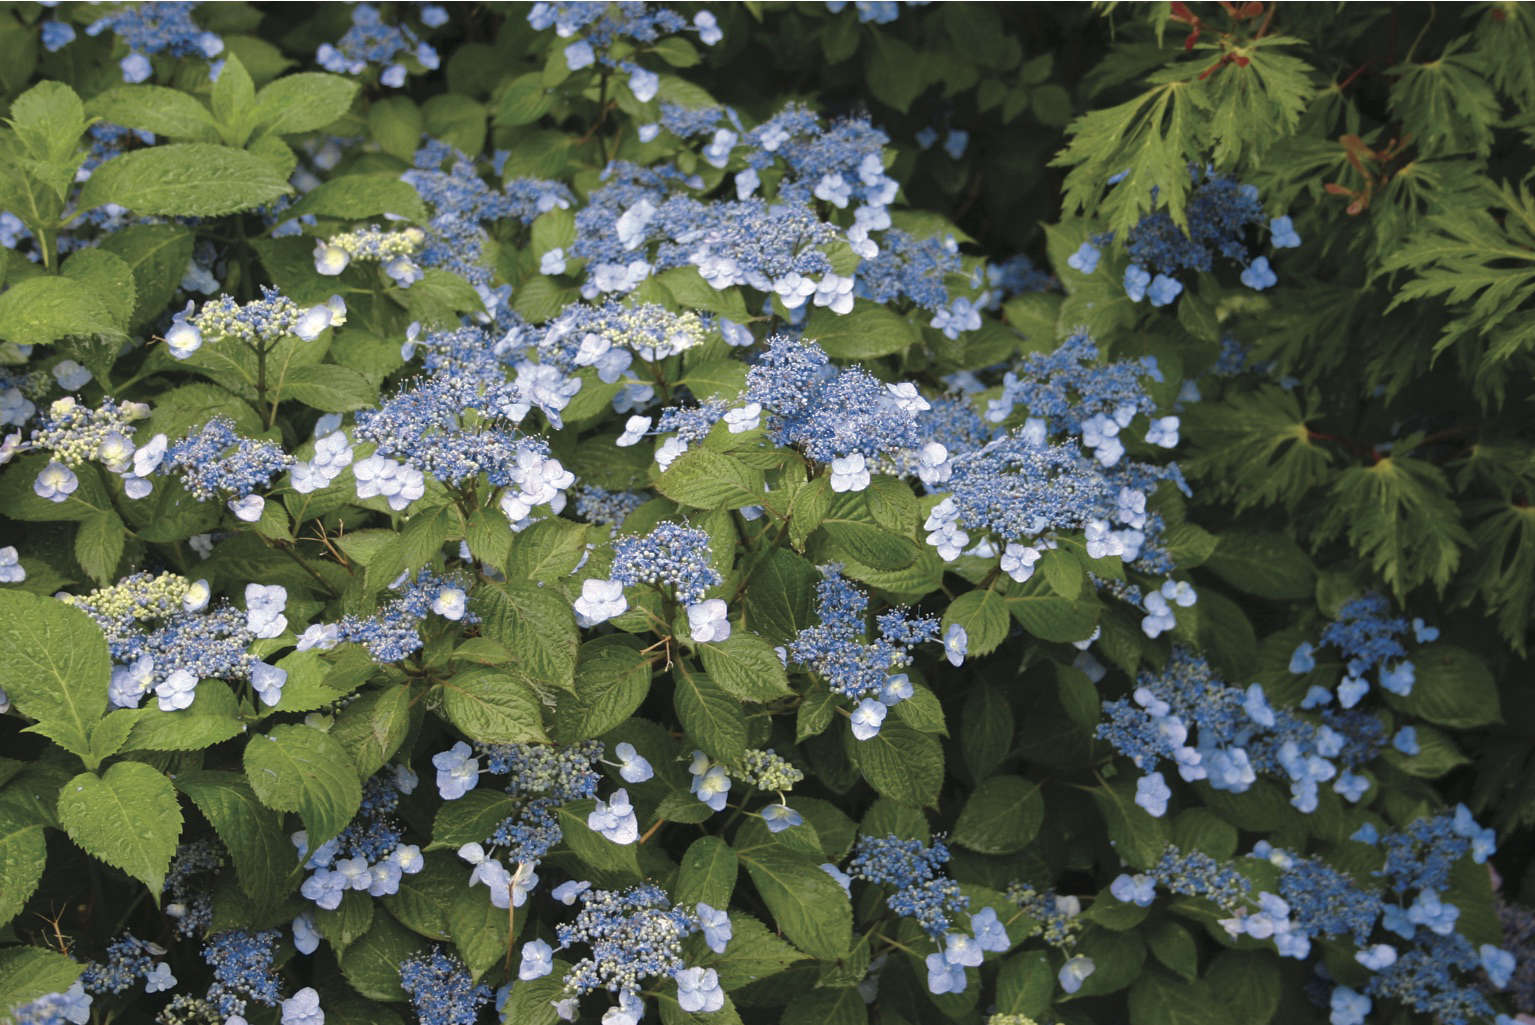 Hydrangeas how to change color from pink to blue gardenista what hydrangea colors are most common hydrangeas blue billow hydrangea white flower farm mightylinksfo